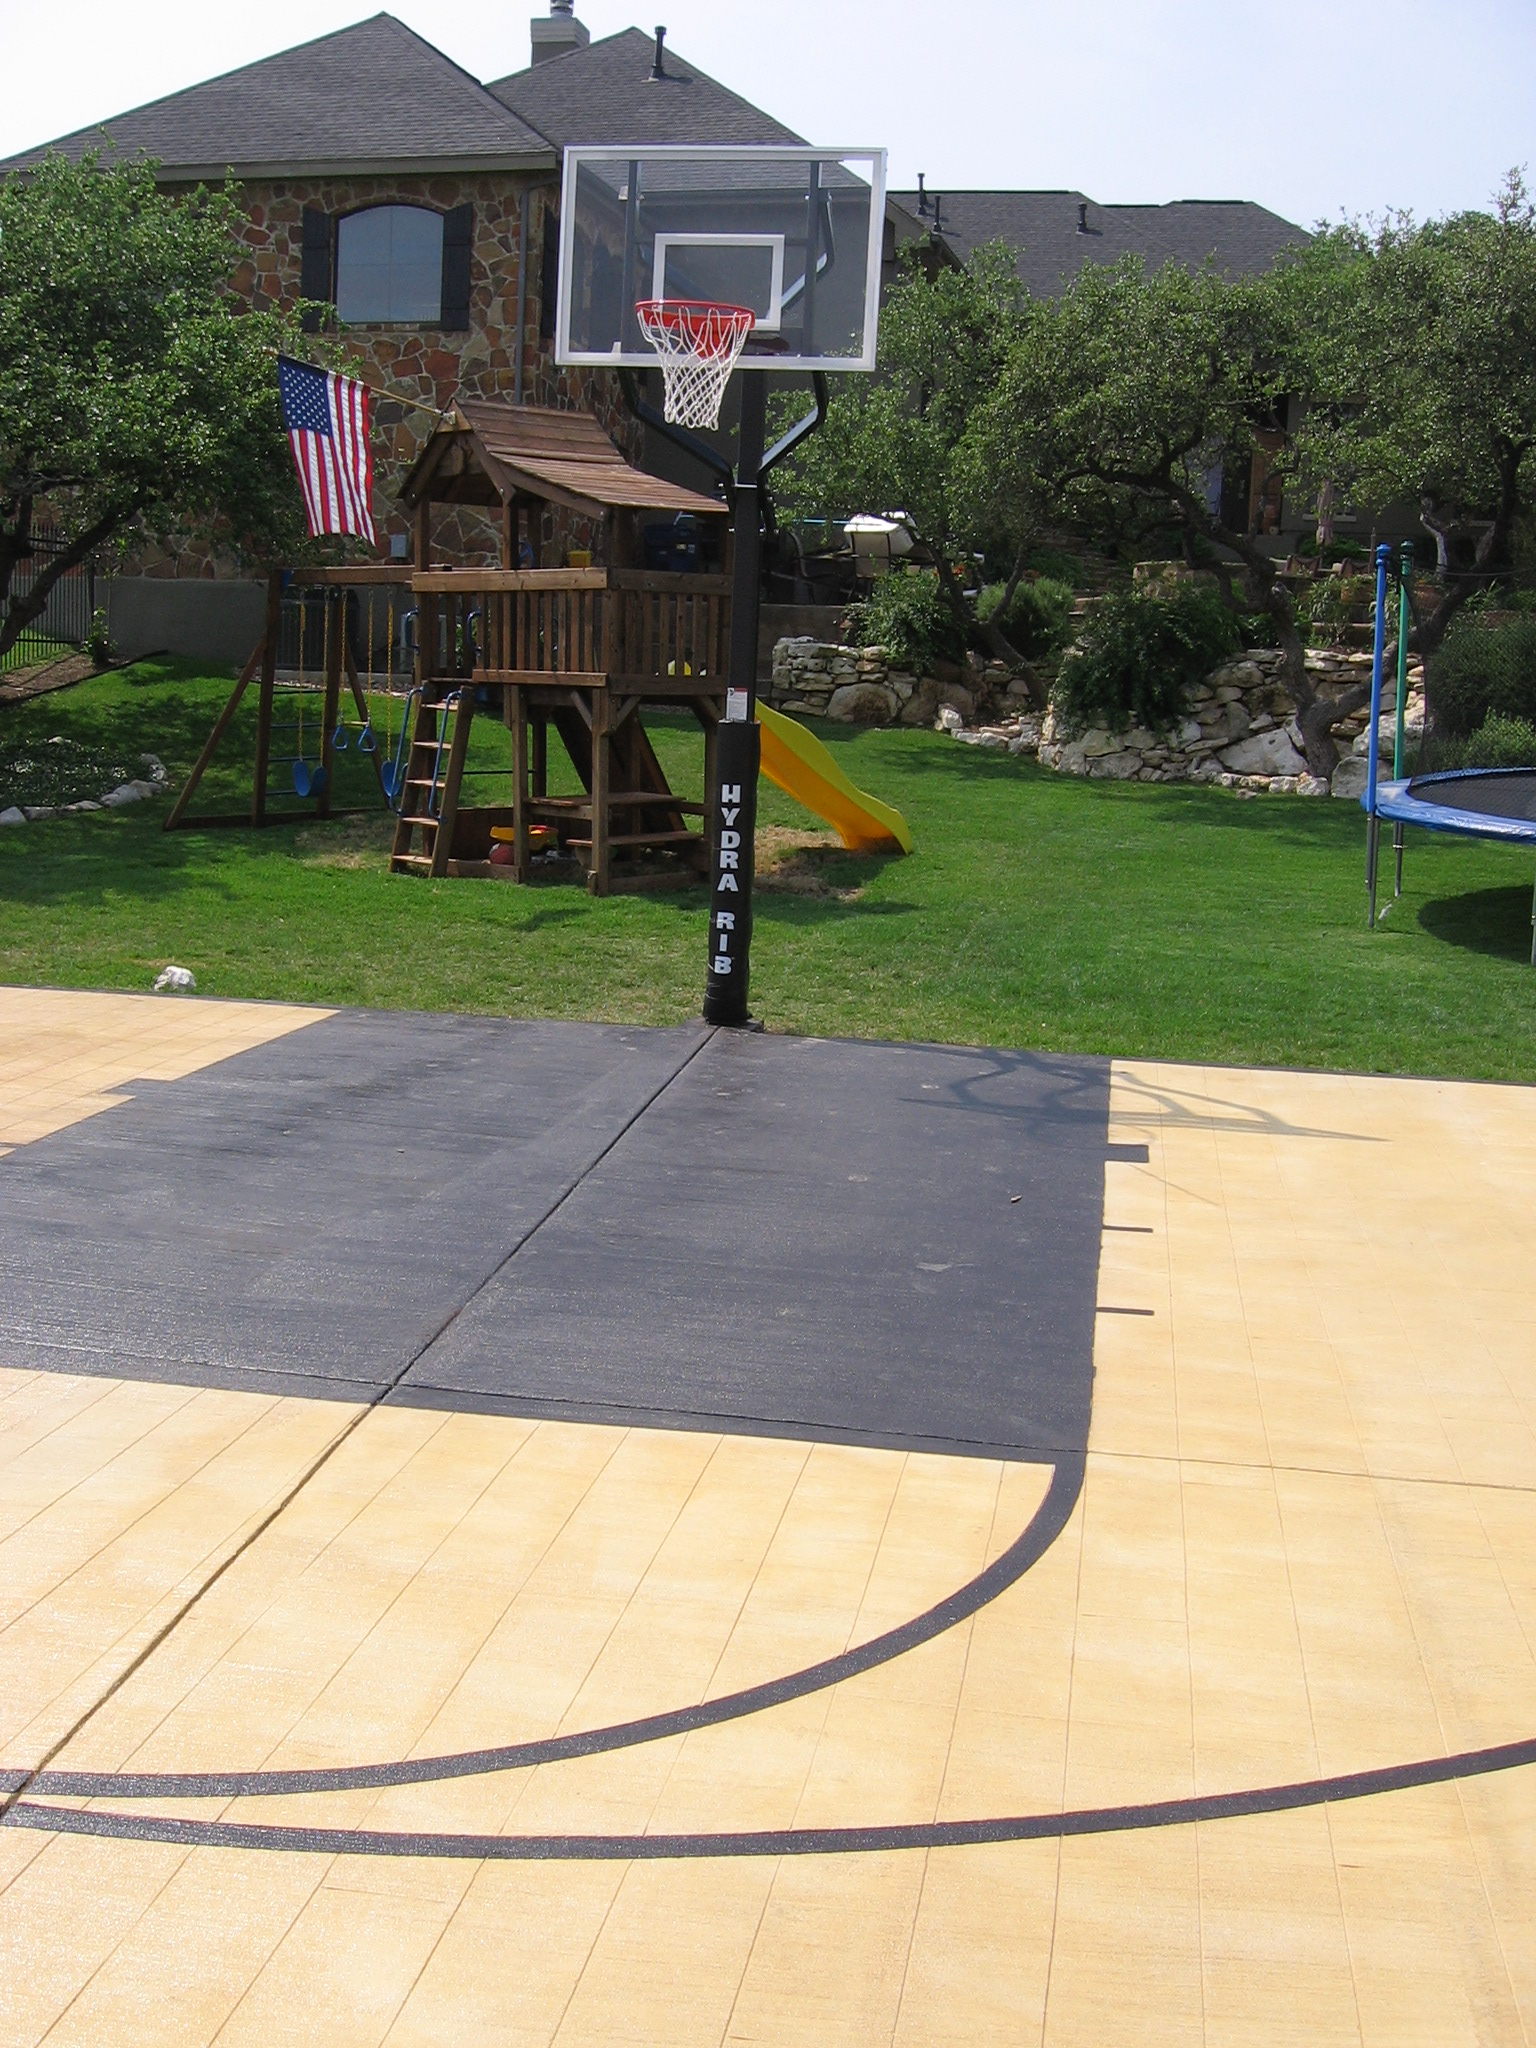 Concrete Basketball Court Basketball Scores